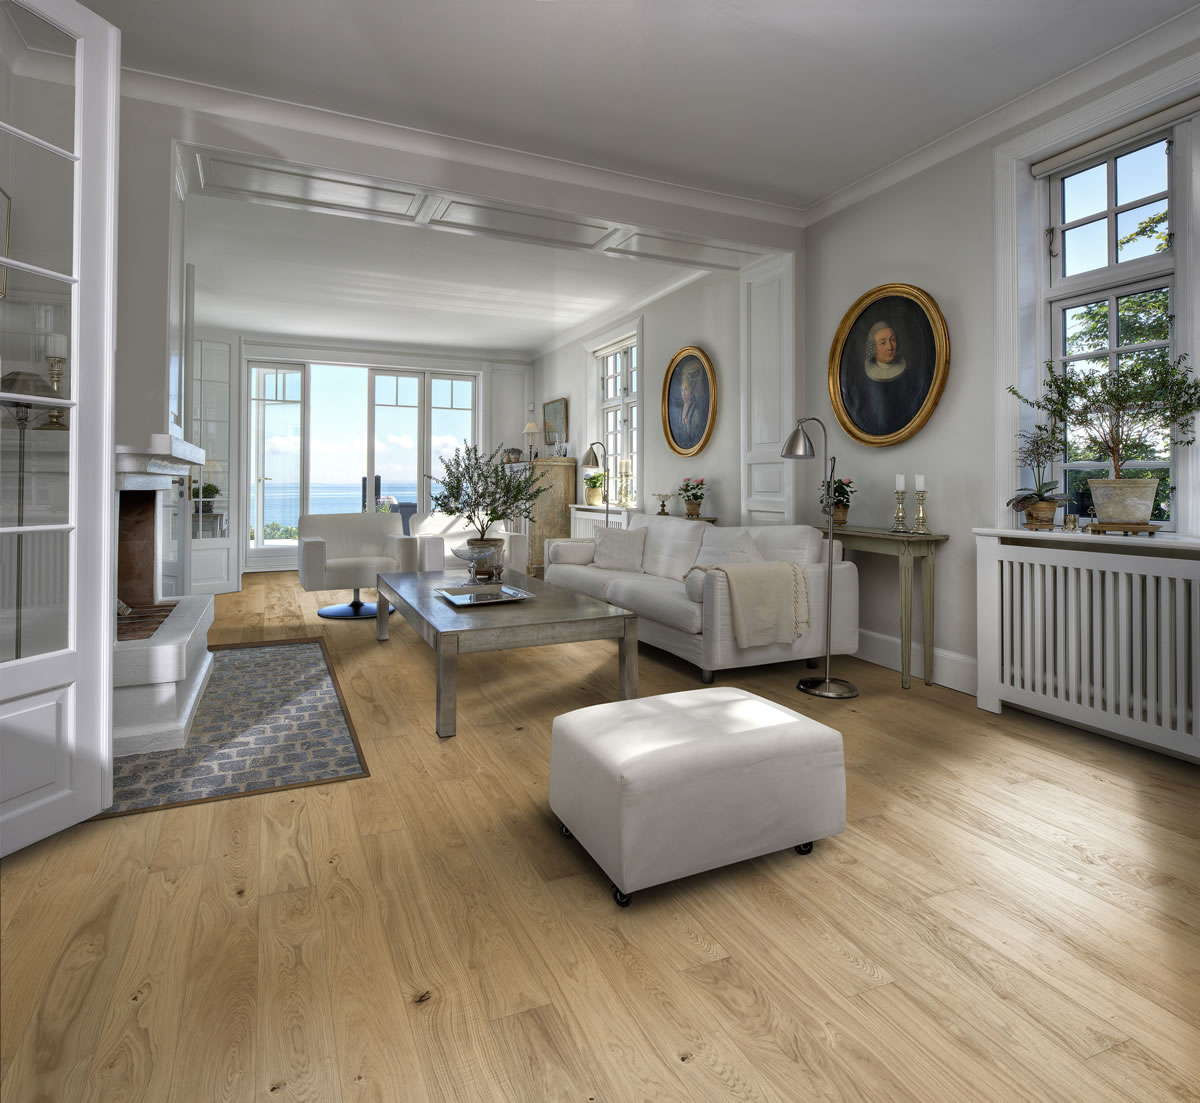 Kahrs Engineered Hardwood Flooring Reviews Of Khrs Hampshire Micheline Faseur Xjpg Khrs Hampshire Stunning with Regard to Unique Hardwood Floor attractive Kahrs Hardwood